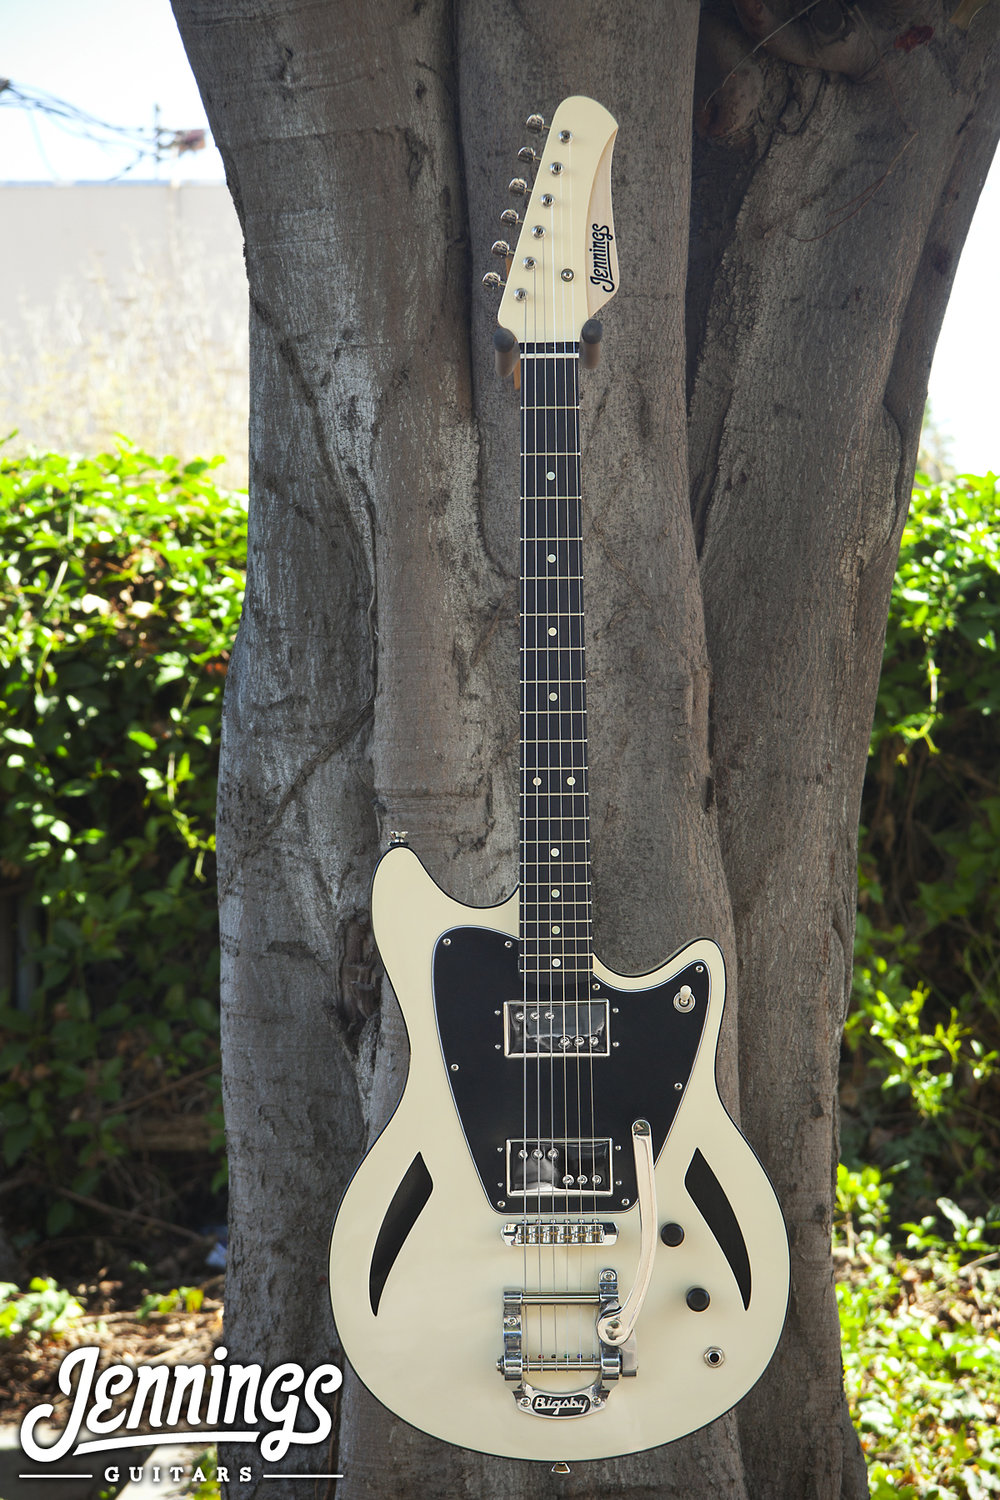 Cream Catalina Jennings Guitars.jpg